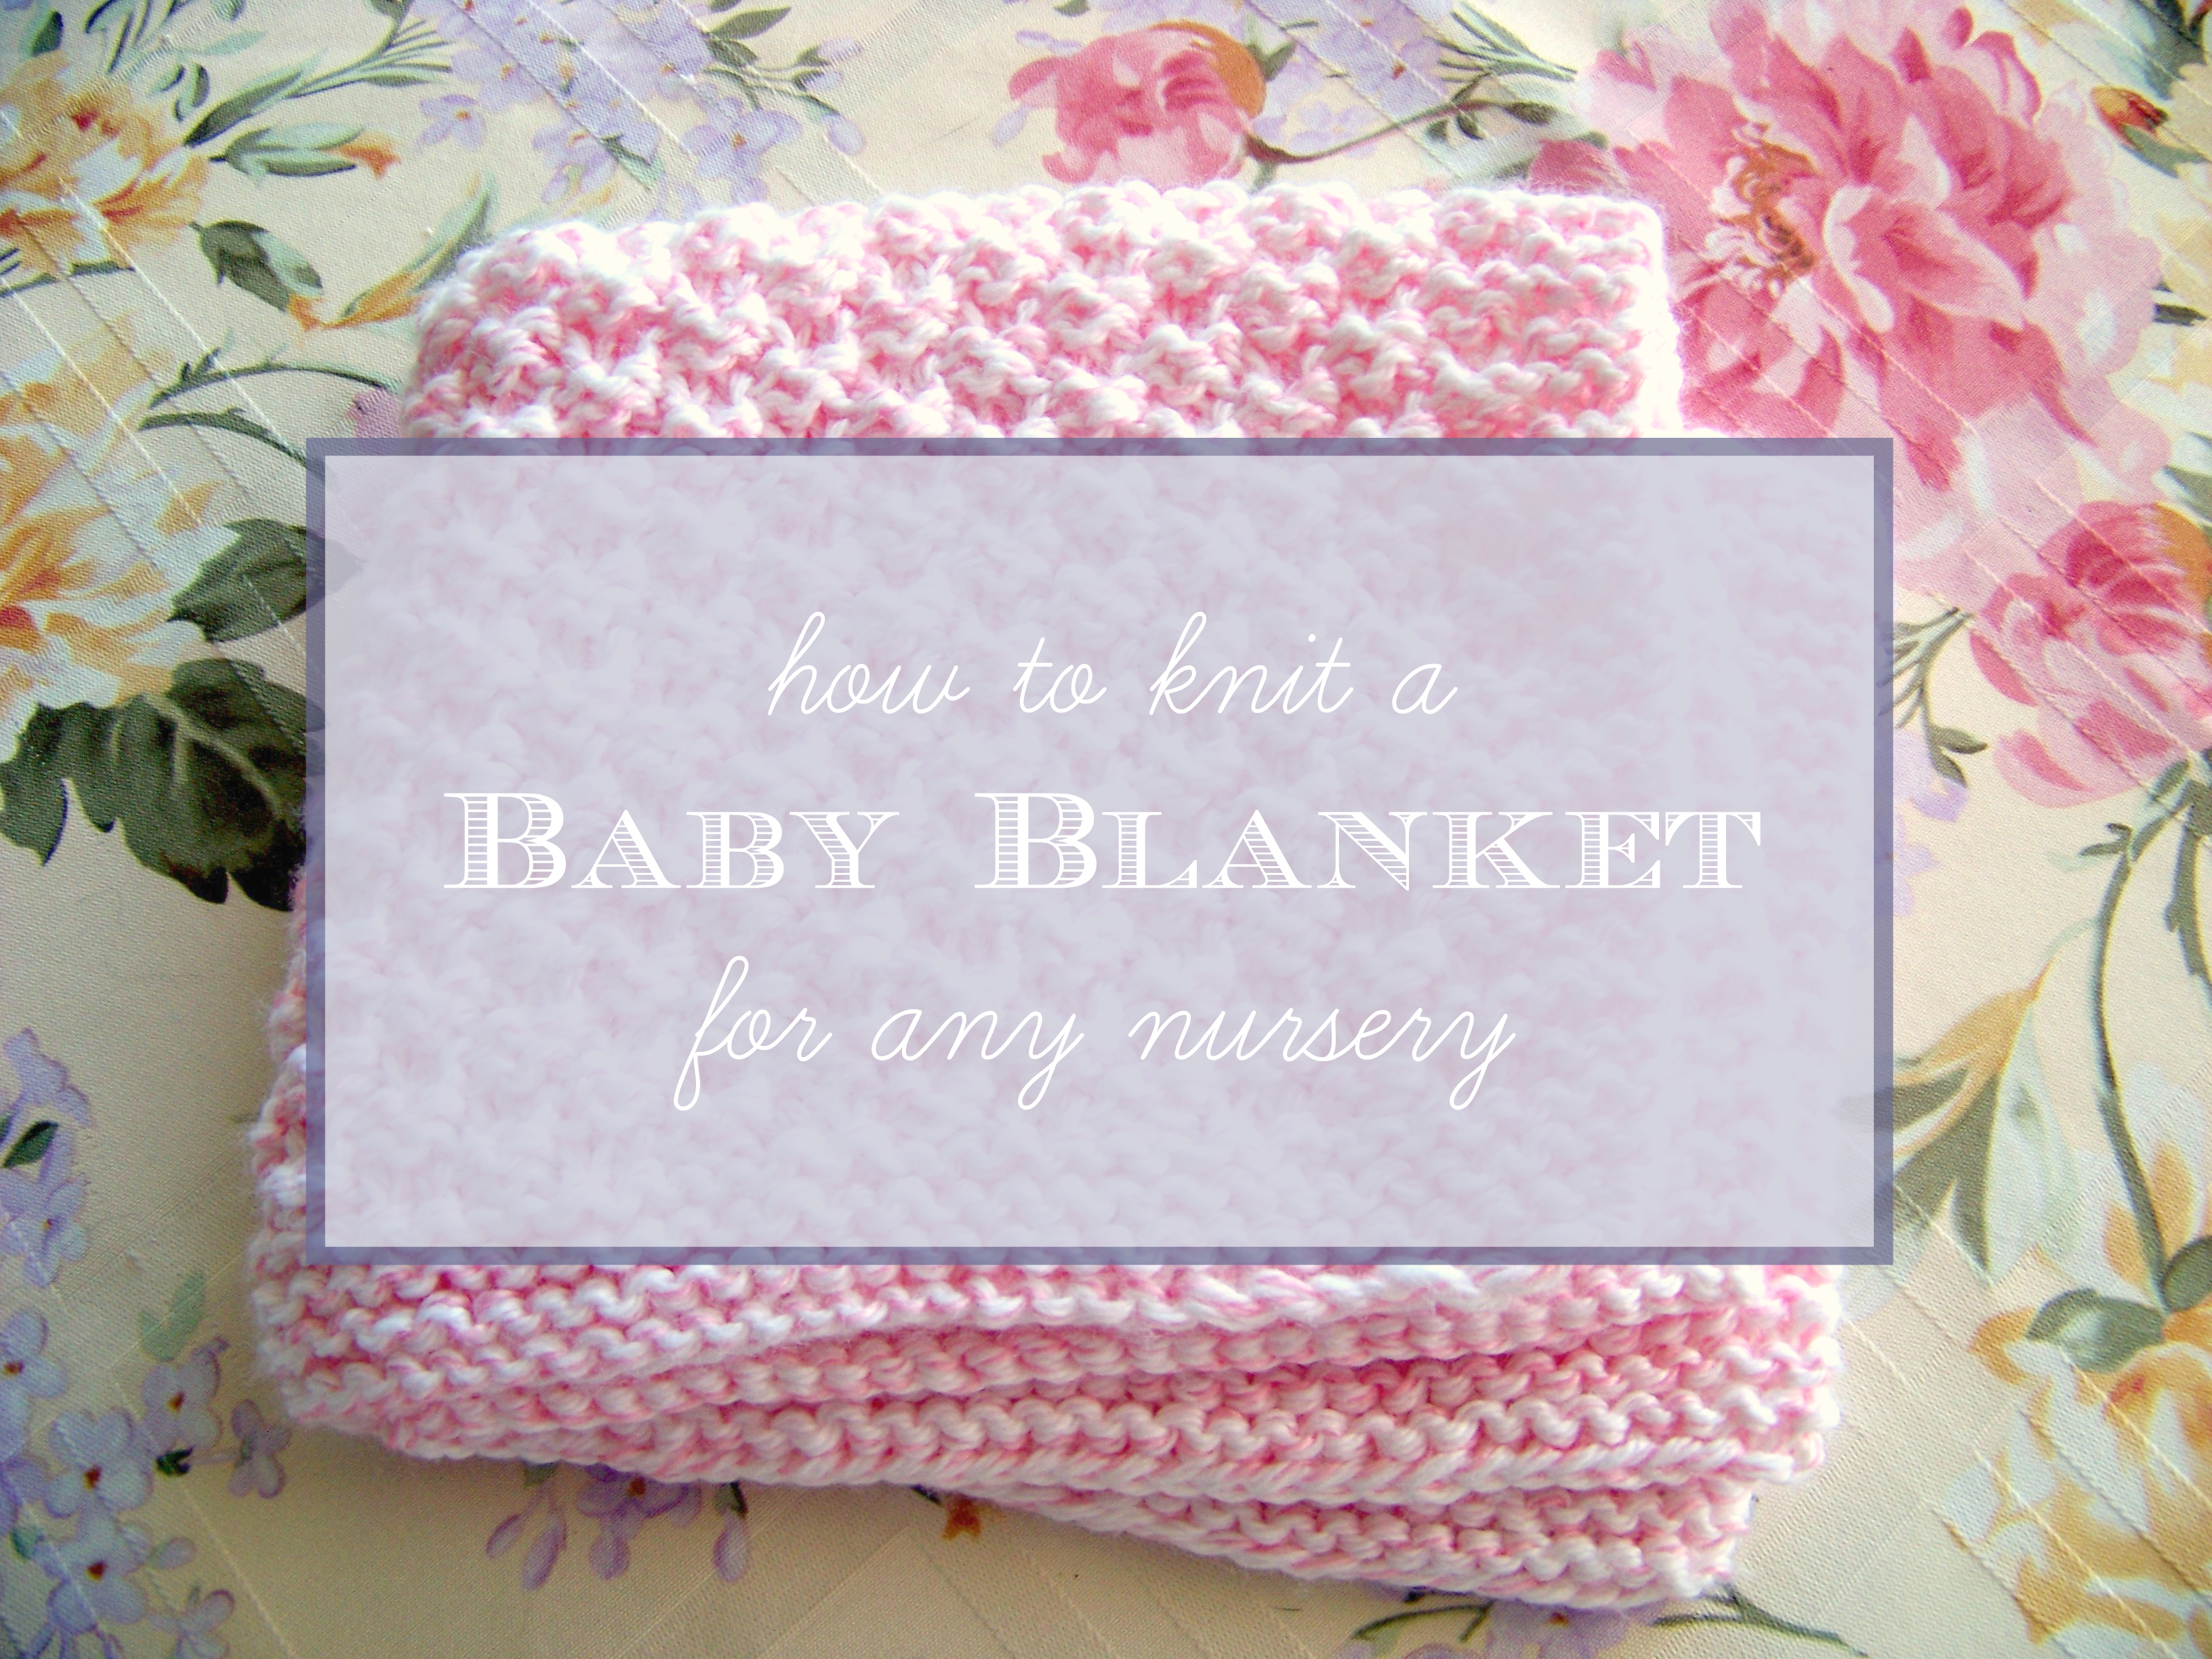 Knitting Patterns For Baby Blankets Easy How To Knit A Ba Blanket